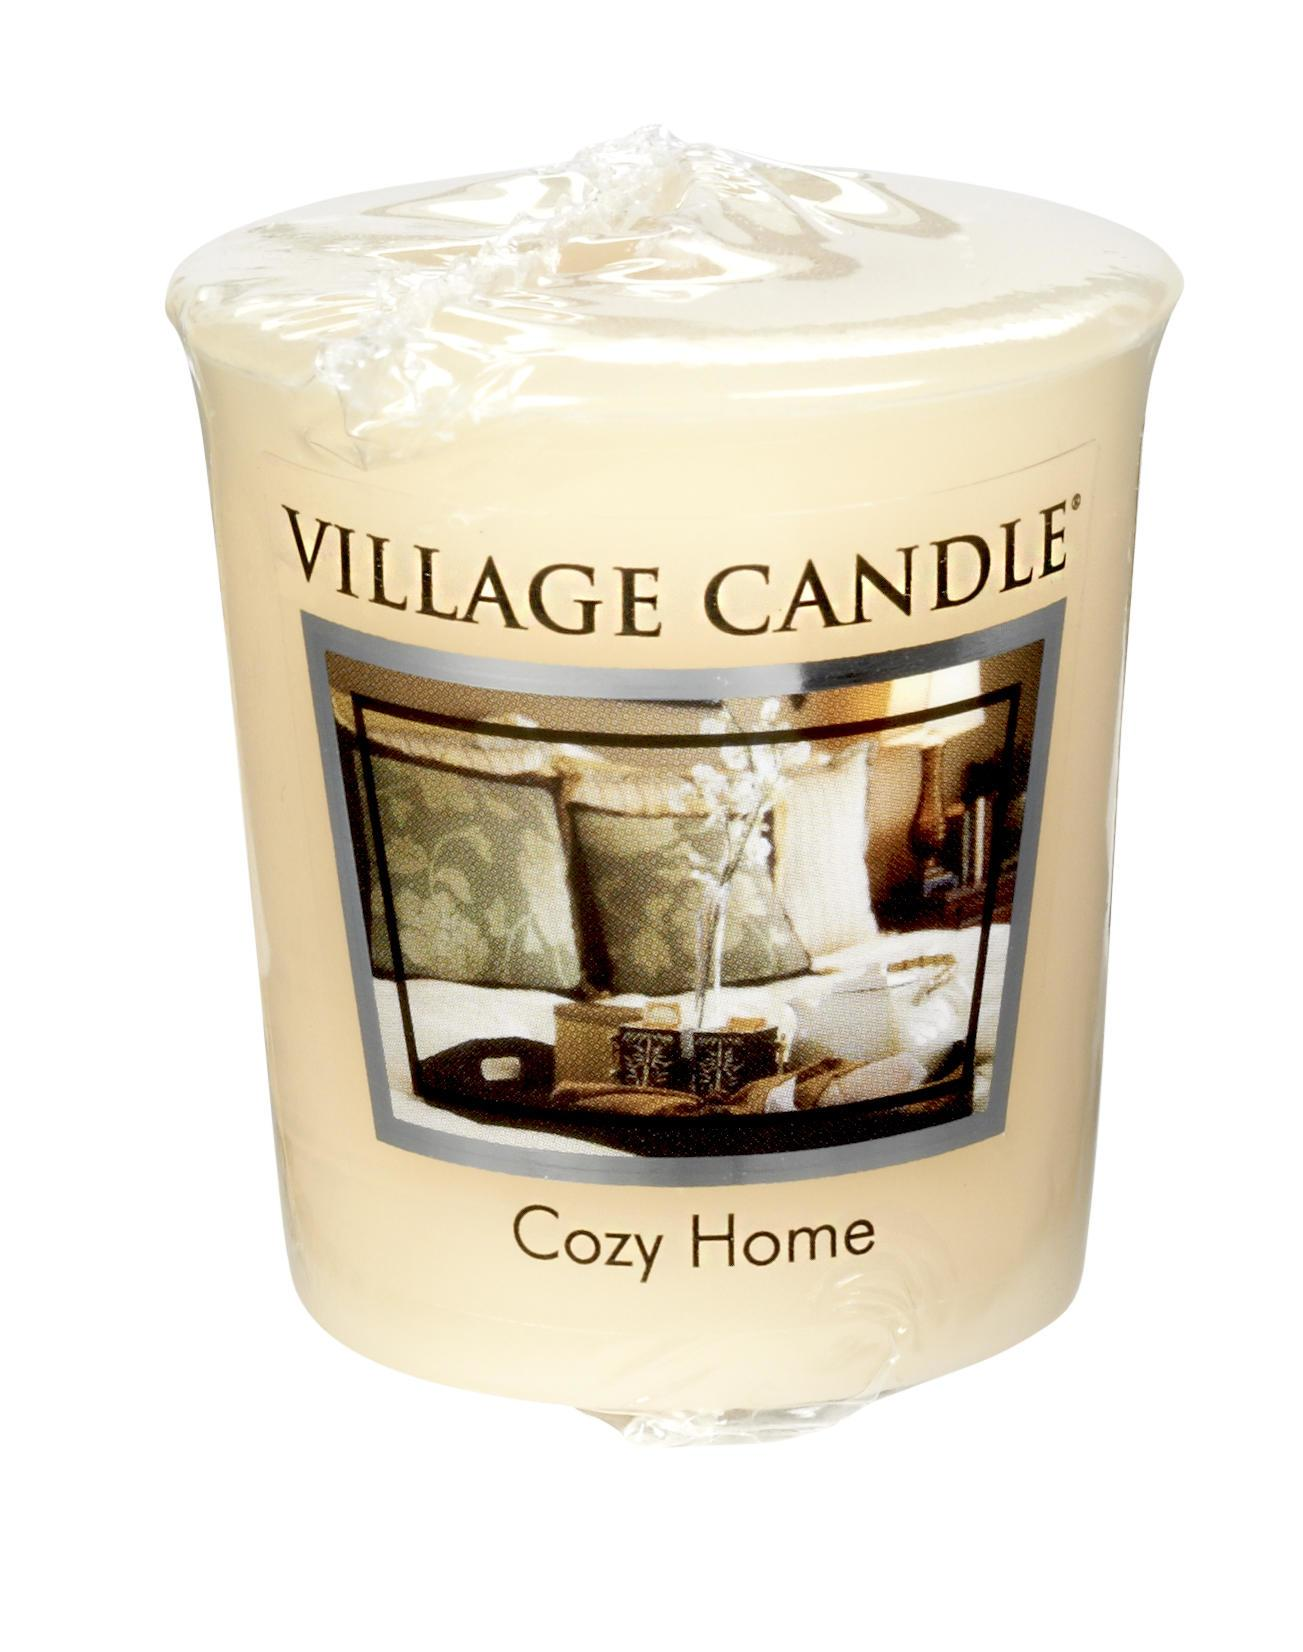 Village Candle Votivní svíčka Village Candle - Cozy Home